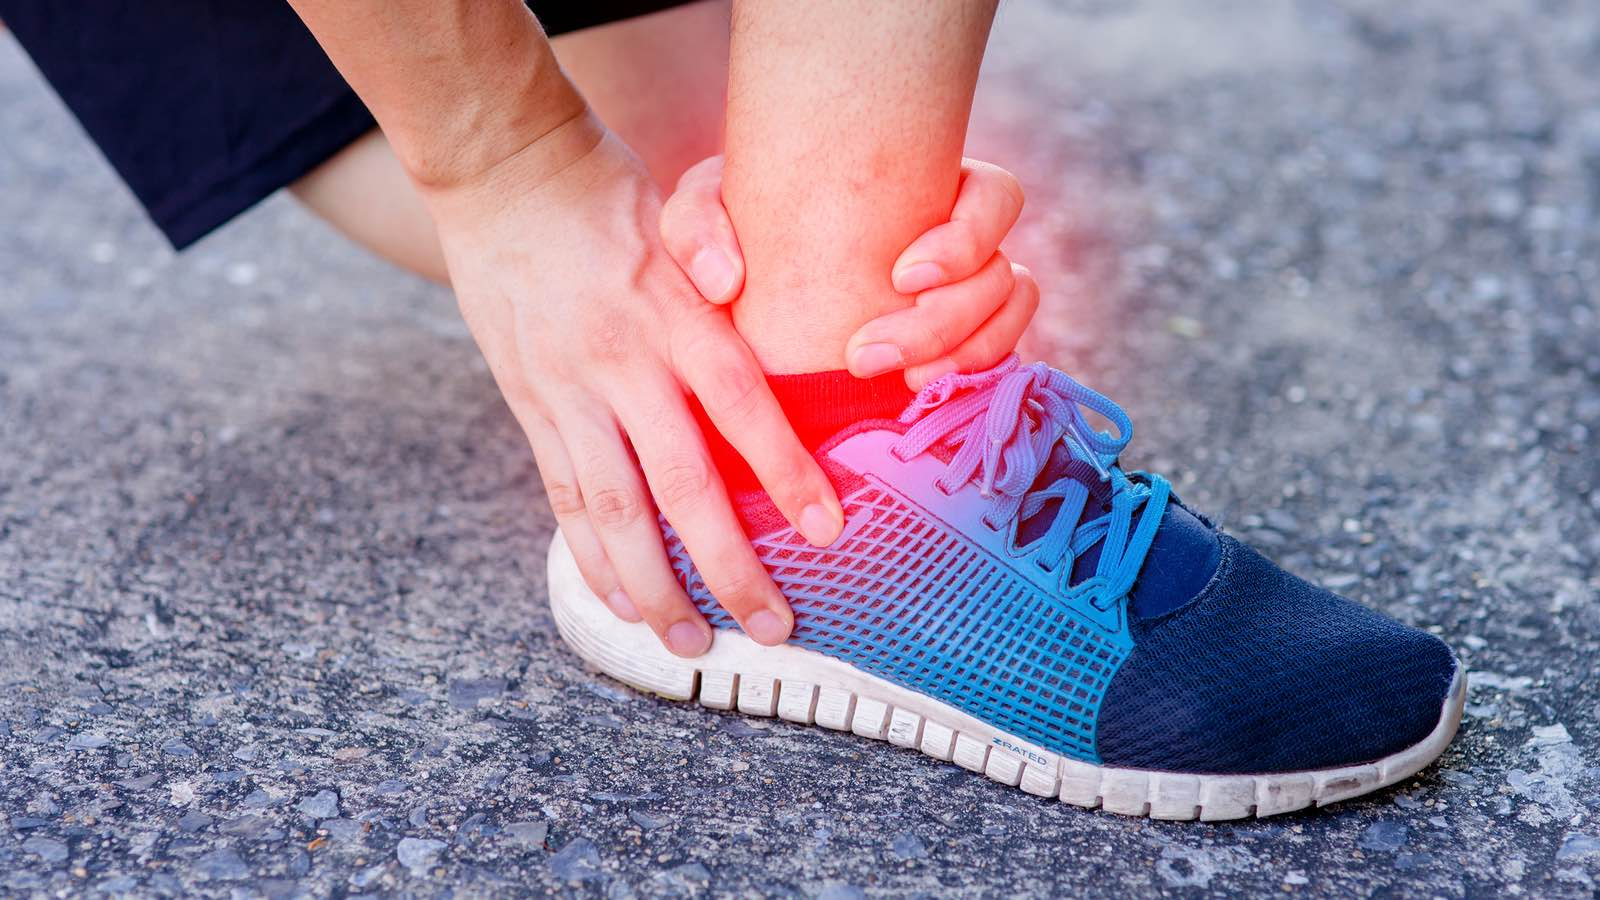 Chronic Ankle Instability Risk Identification - How to identify and prevent chronic ankle instability after an ankle sprain